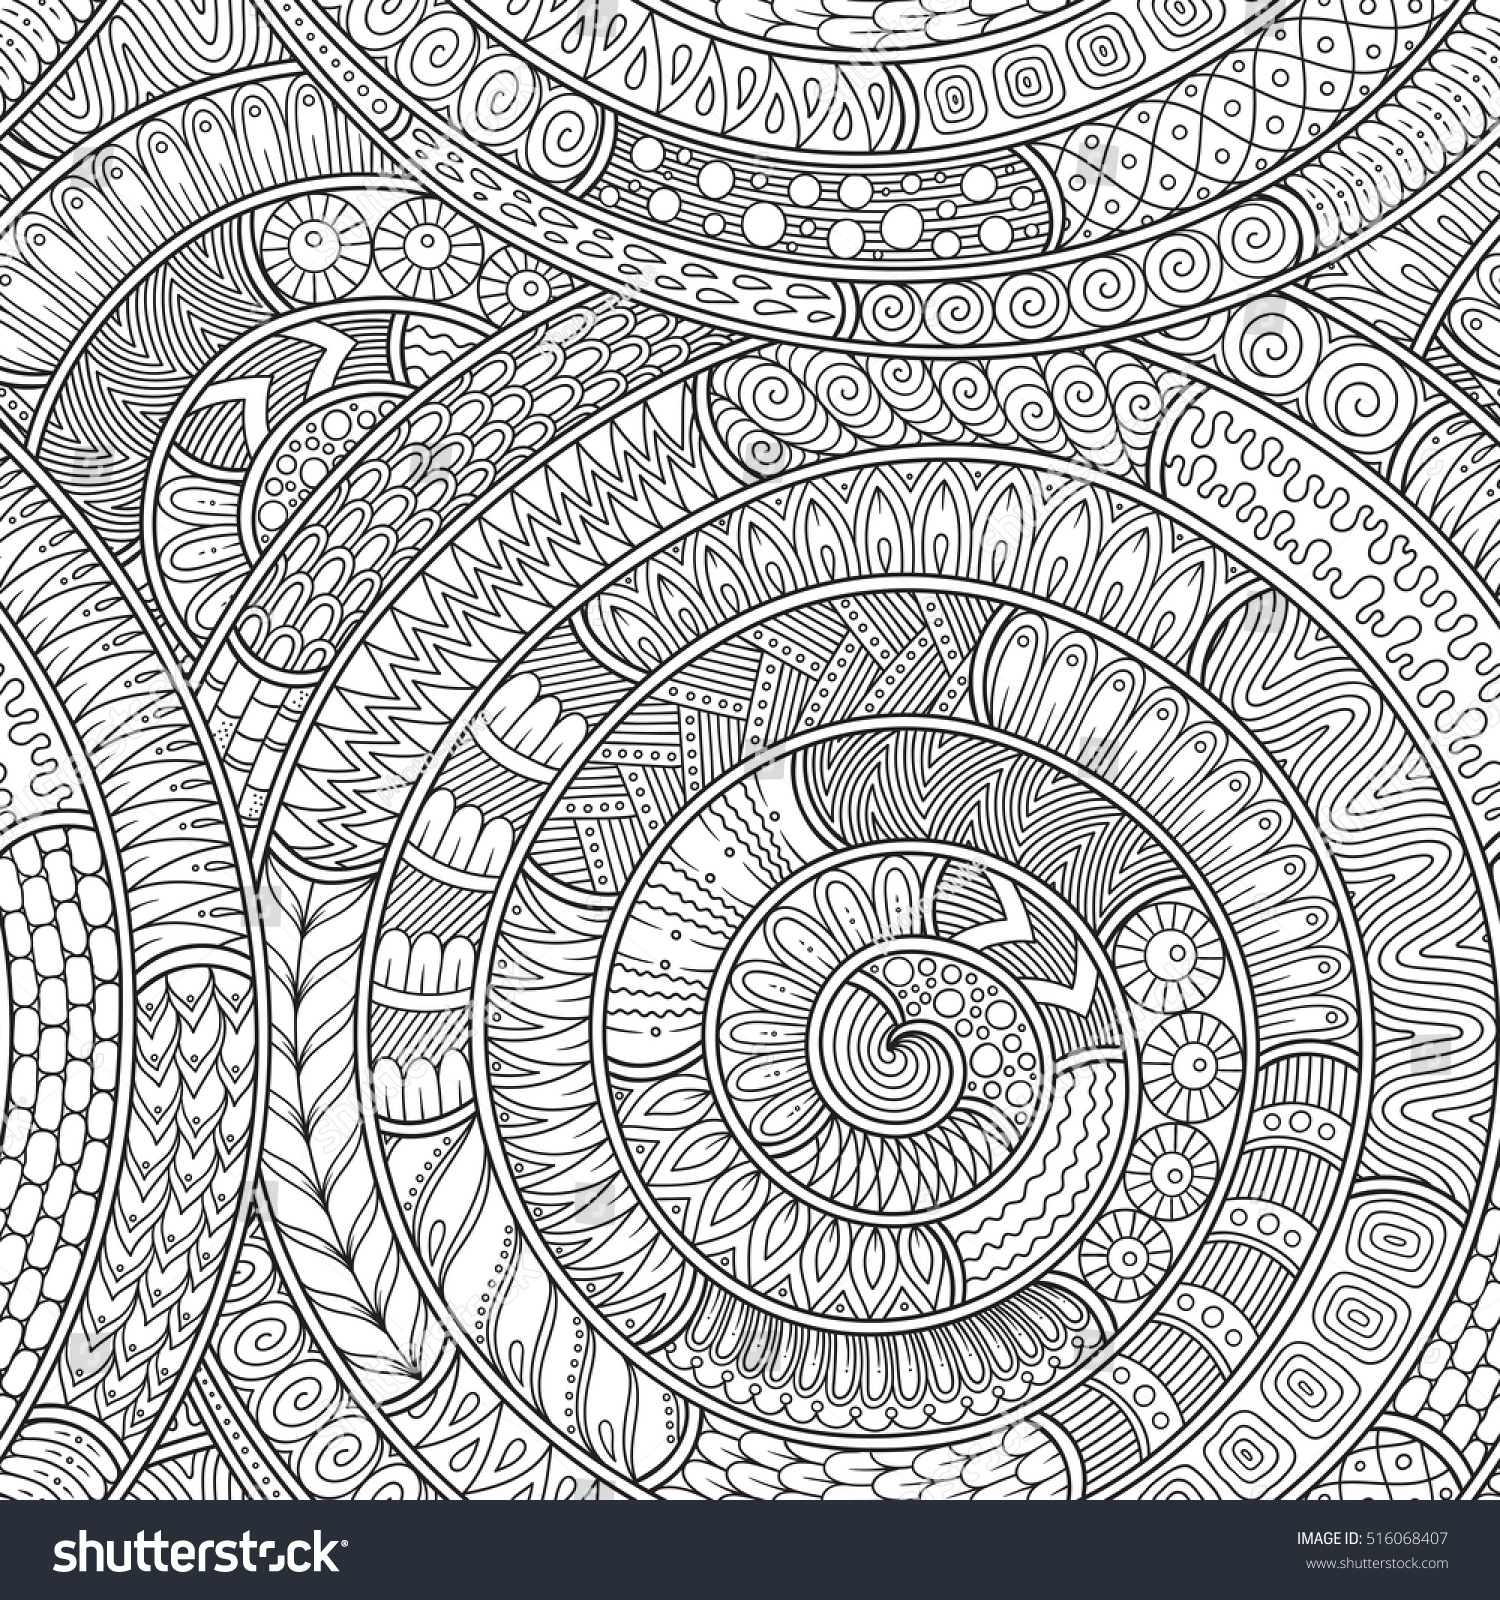 Doodle background in vector with doodles flowers and paisley Vector ethnic pattern can be